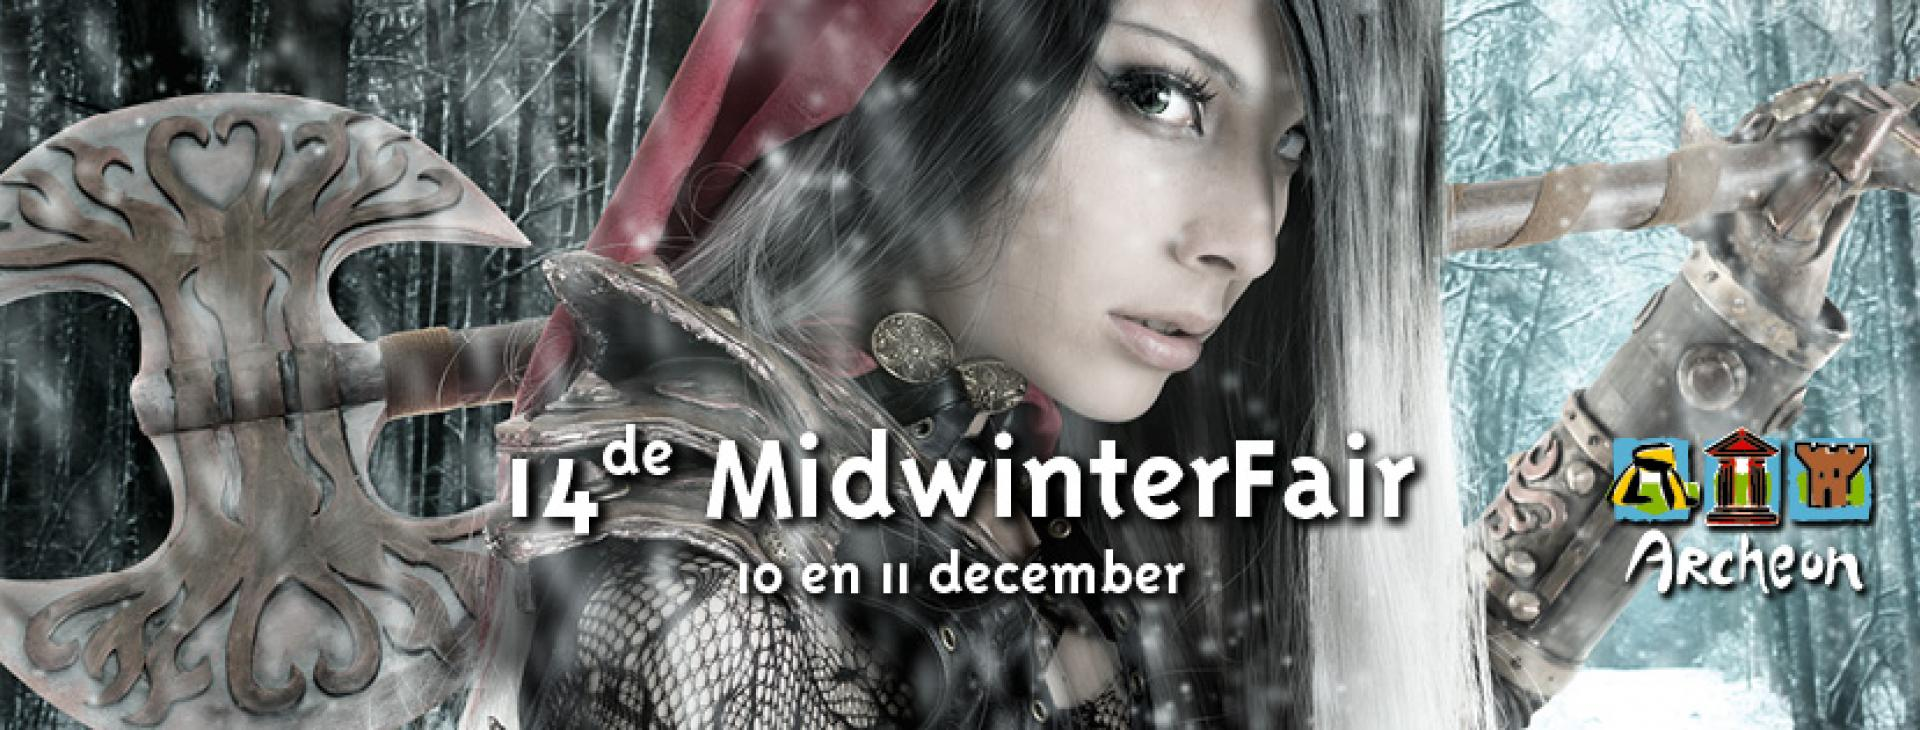 14de Midwinter Fair in het Witte Weekblad